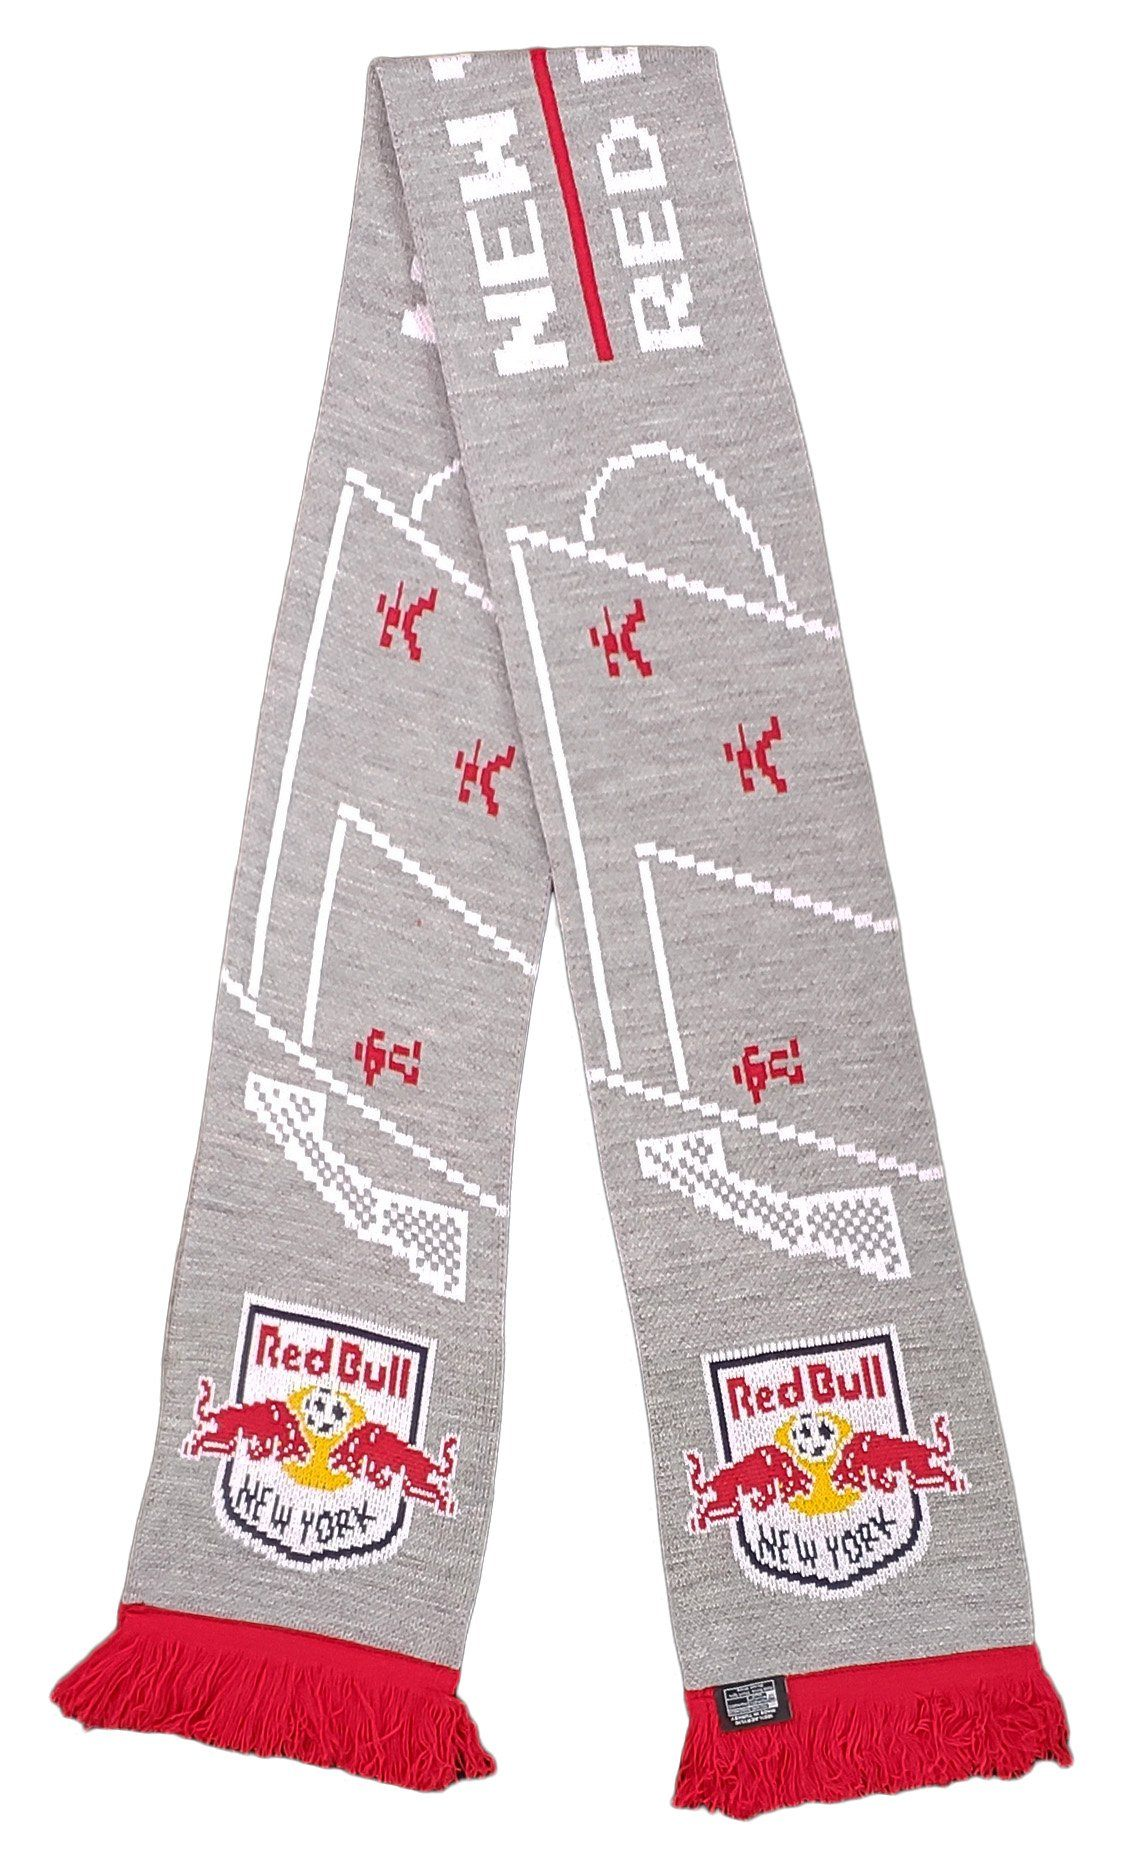 NEW YORK RED BULLS SCARF - 8-Bit Soccer